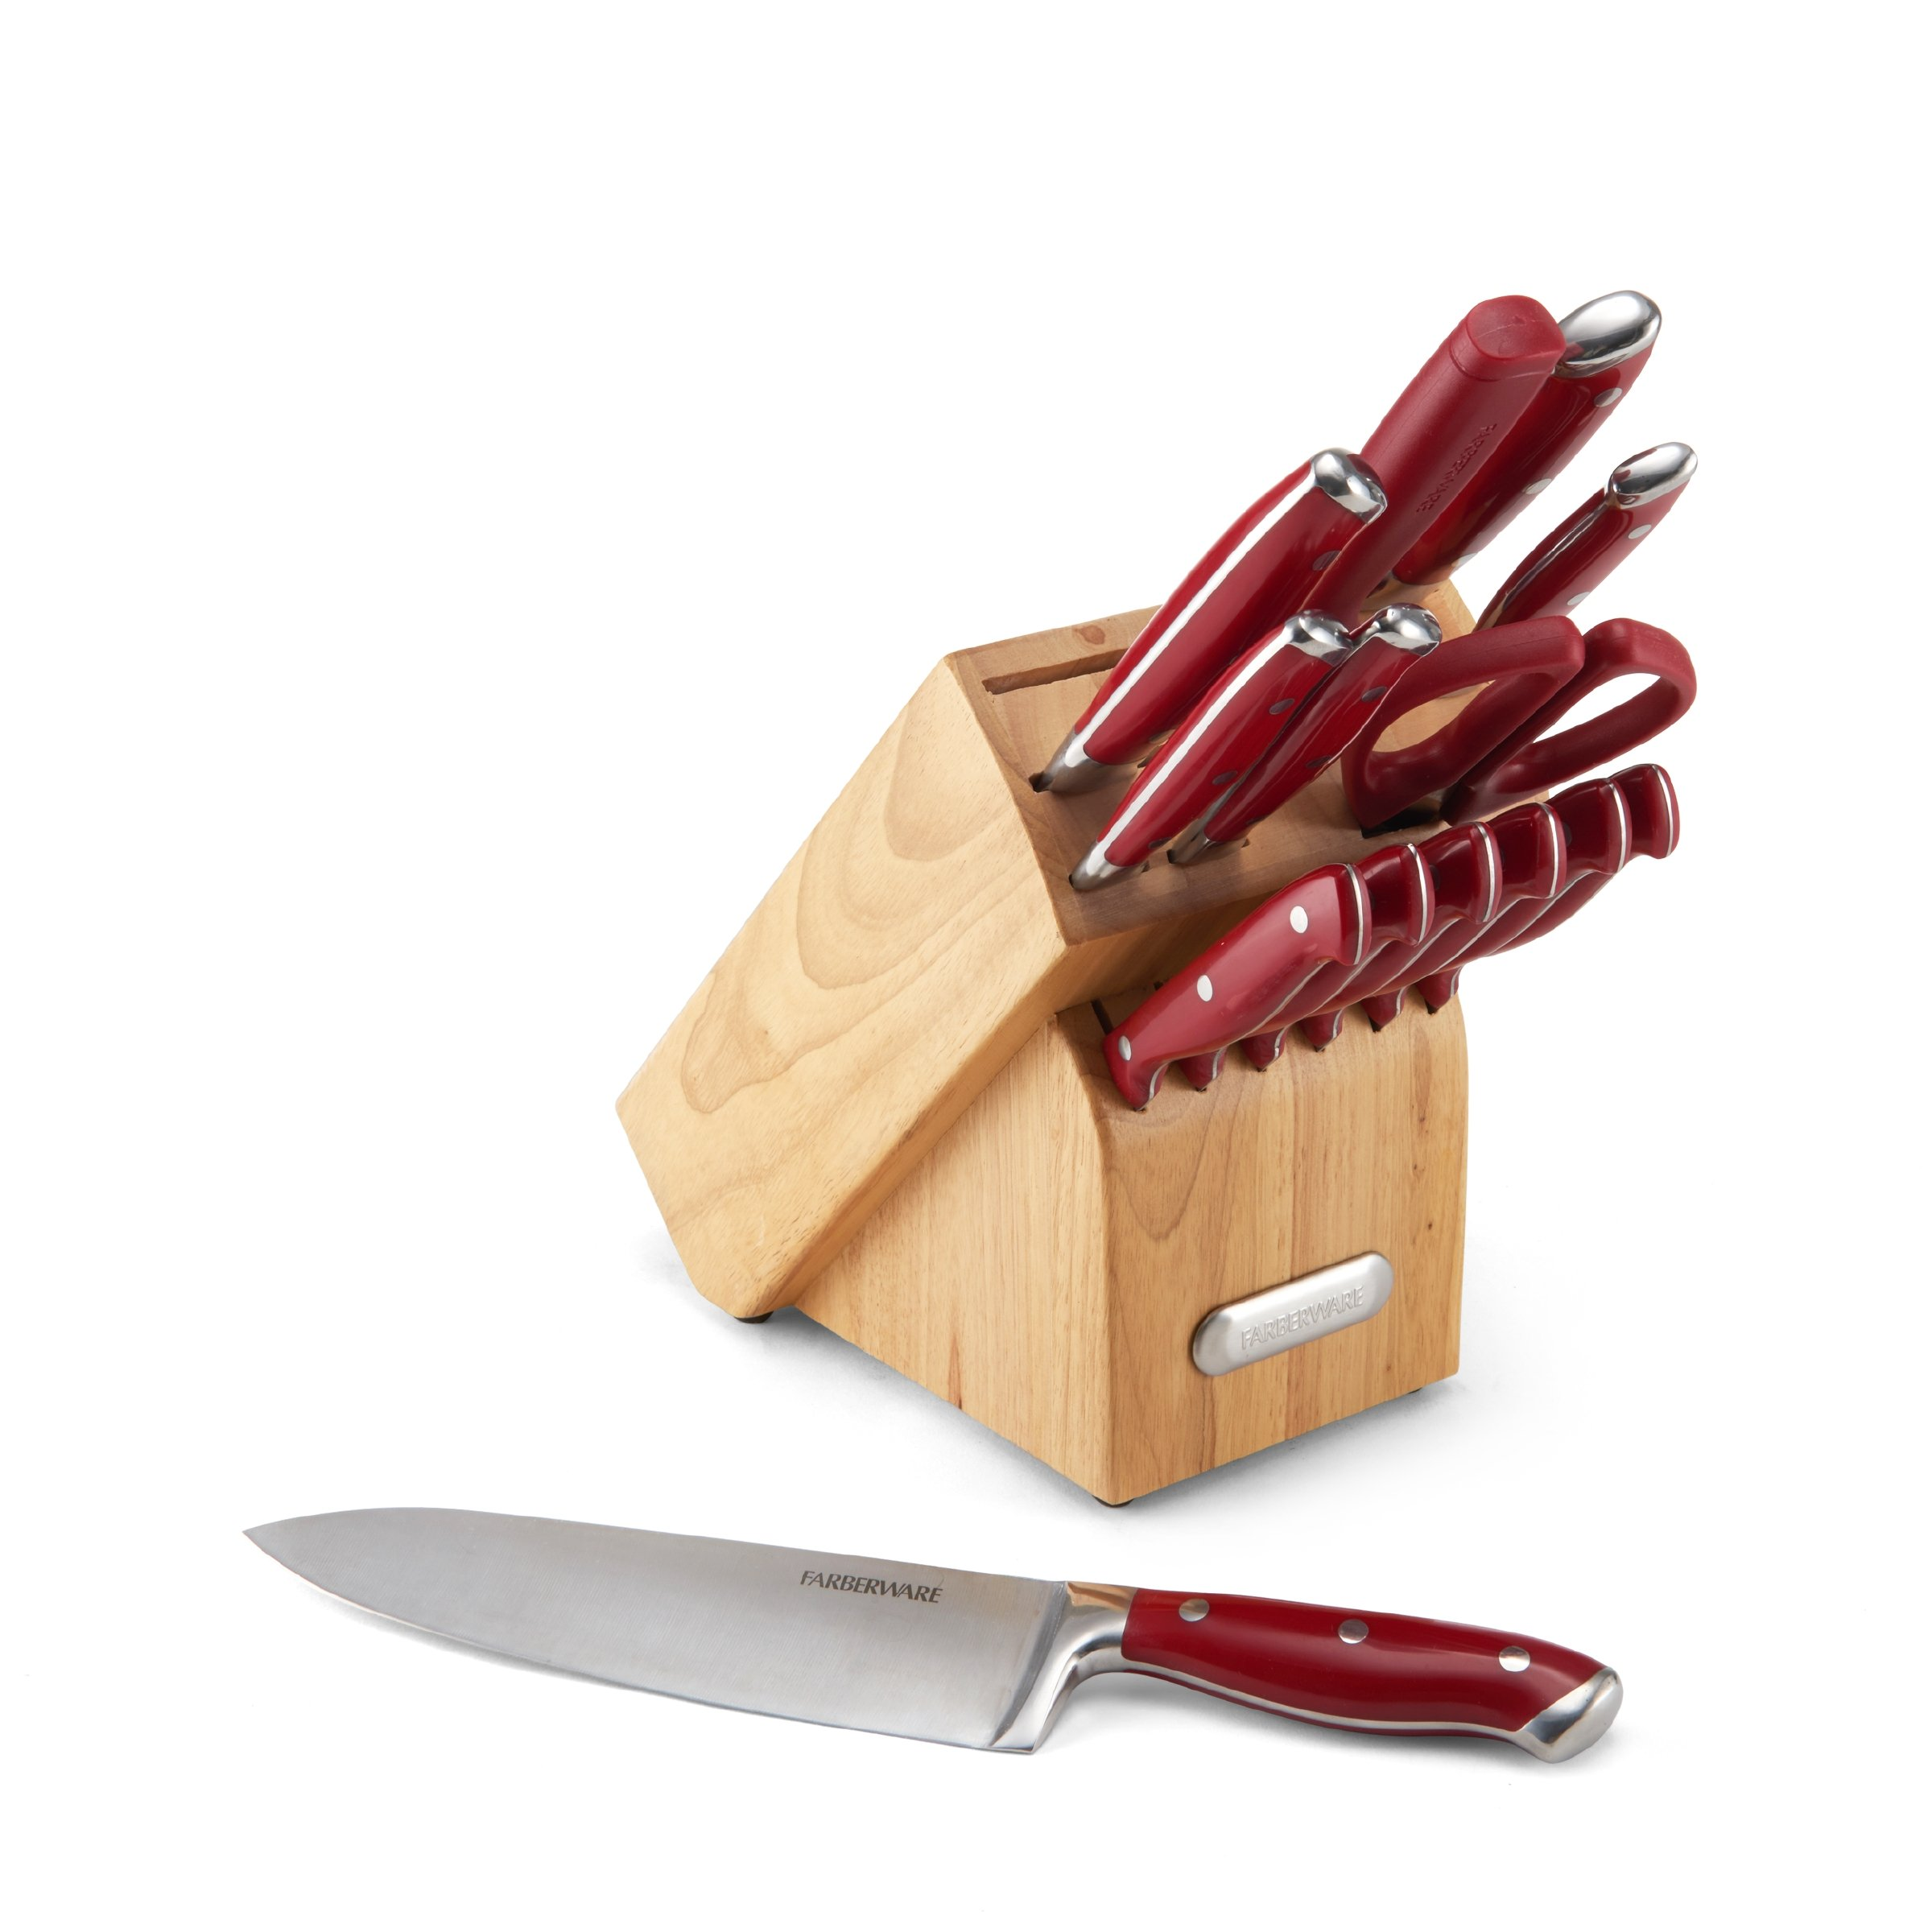 Farberware 5148963 High-Carbon Stainless Steel 15-Piece Forged Triple Riveted Cutlery Set, Red